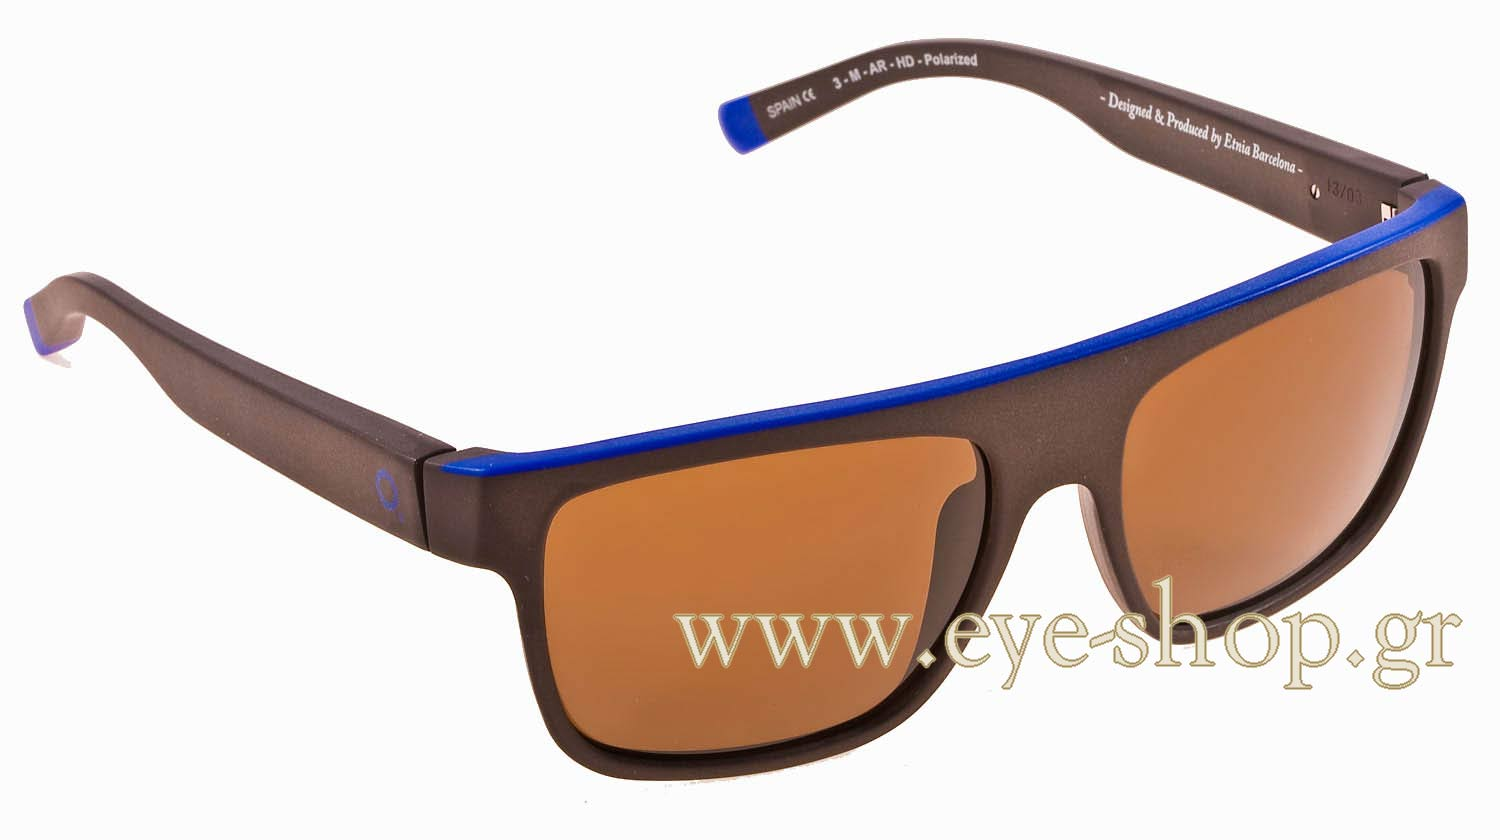 fca9d02634 SUNGLASSES Etnia Barcelona NH206 BRBL Krystal HD Polarized